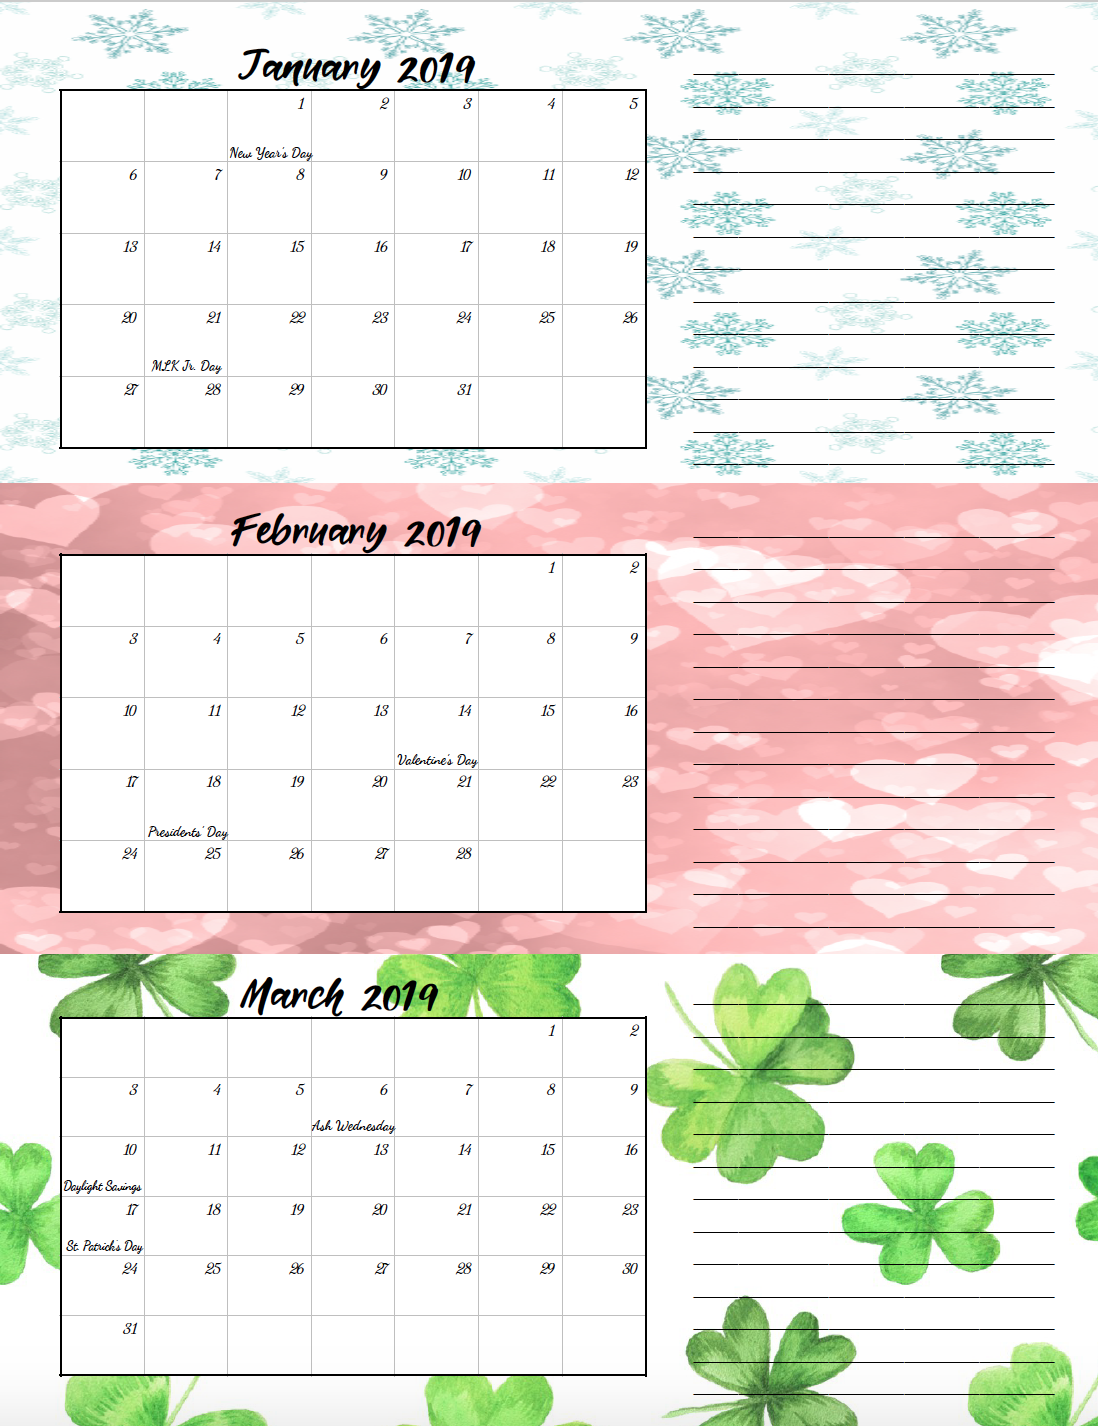 Quarterly Calendar Design : Free printable quarterly calendars with holidays